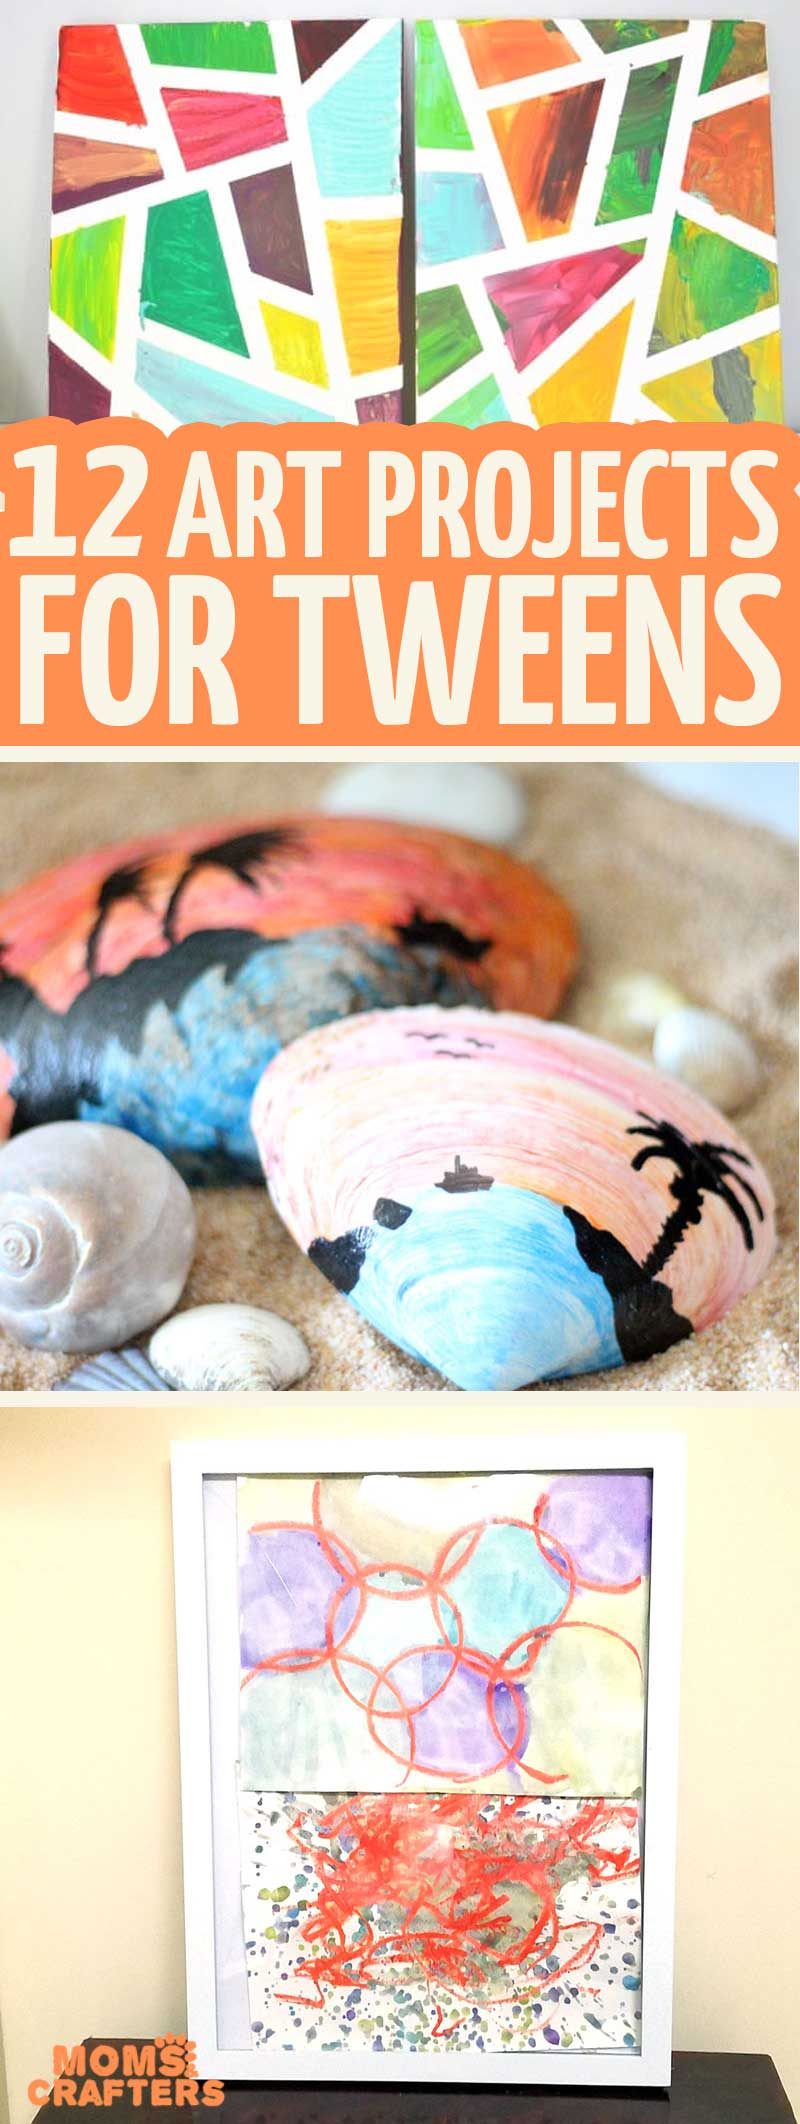 Art projects for tweens 12 beautiful and easy ideas for Projects for tweens